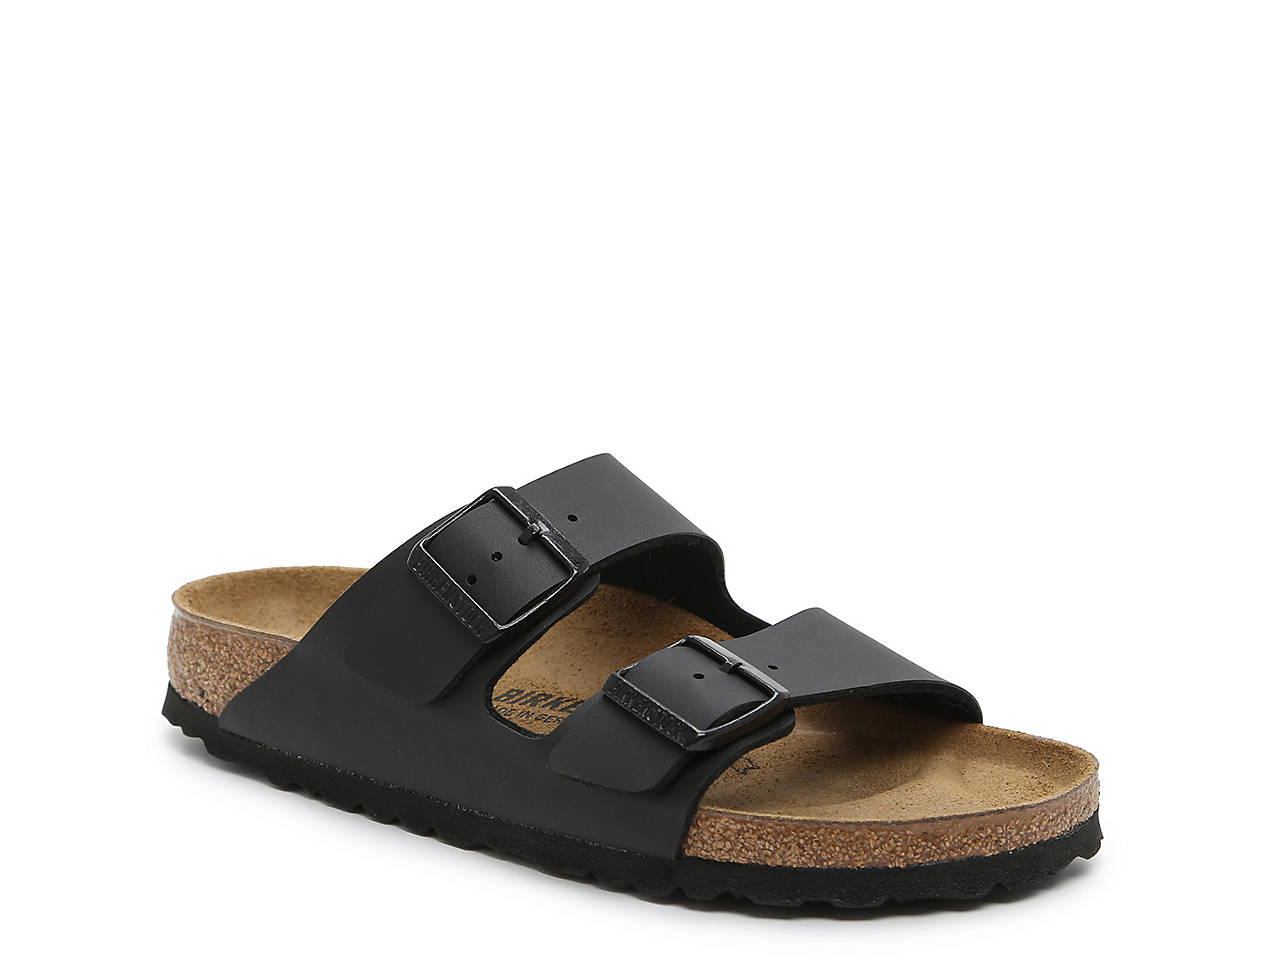 Arizona Slide Sandal - Women's